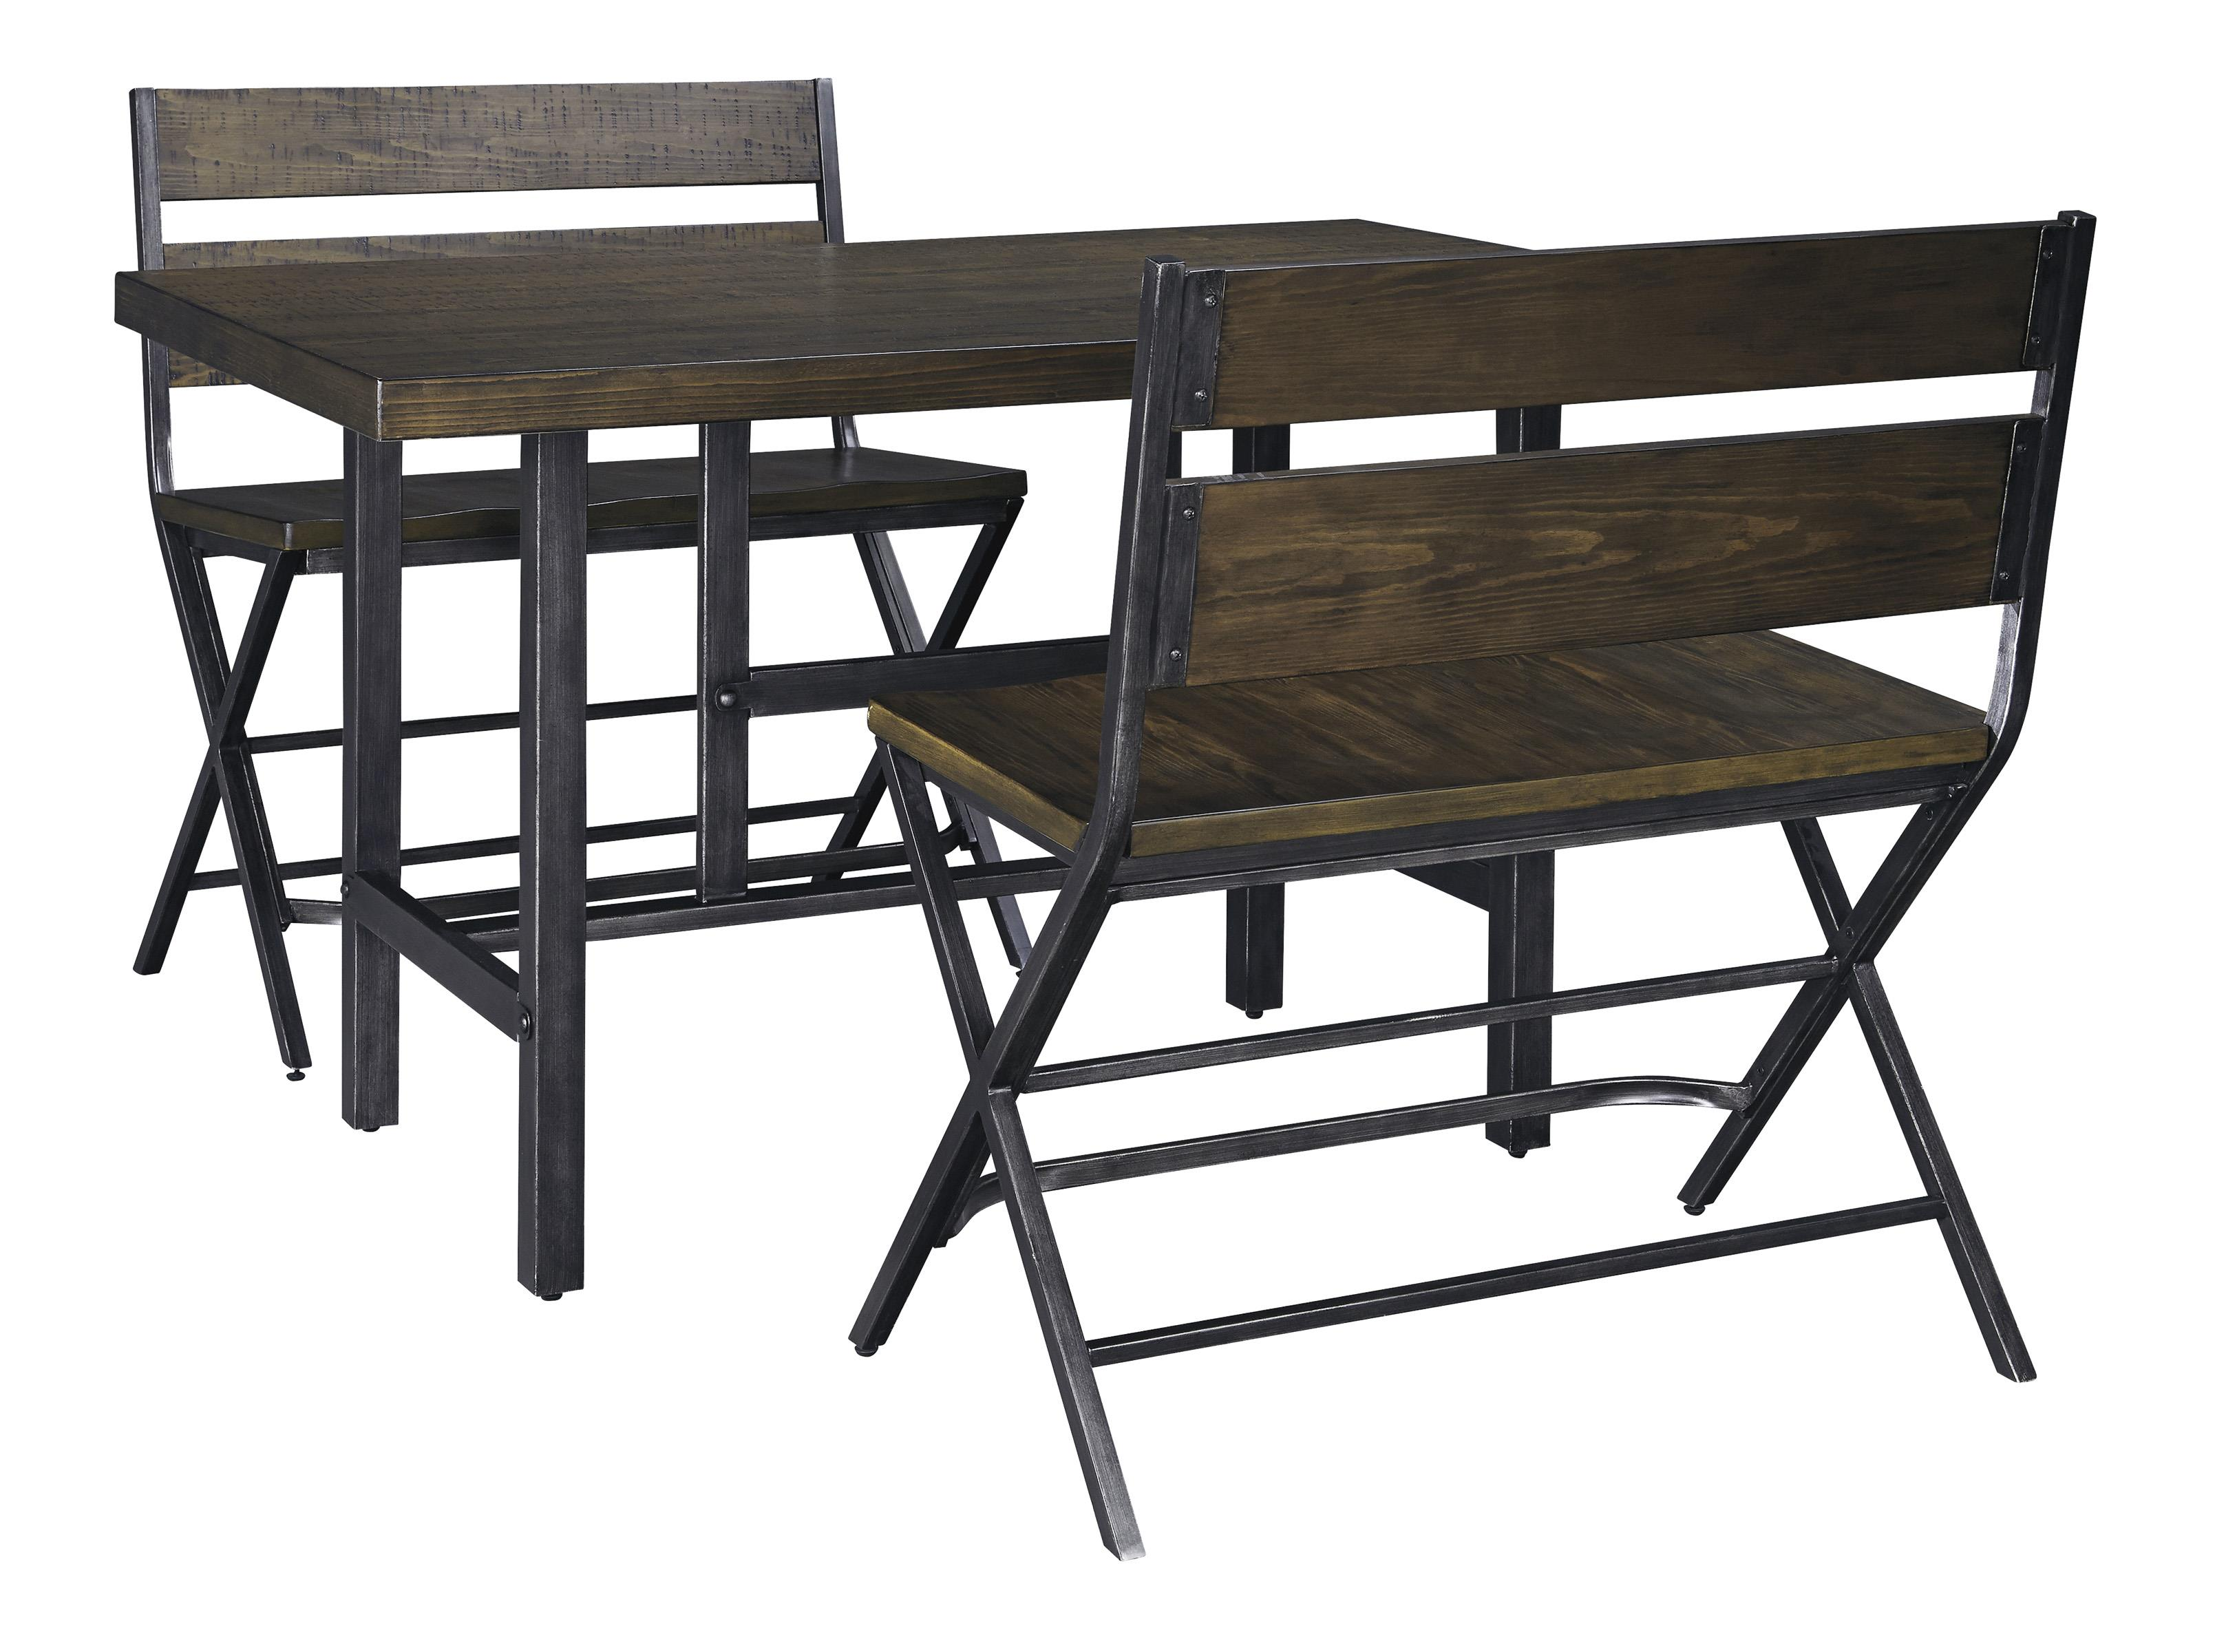 Superb img of Dining Room Counter Table w/ Pine Veneers and Double Bar Stool w  with #5A4E3D color and 3218x2400 pixels